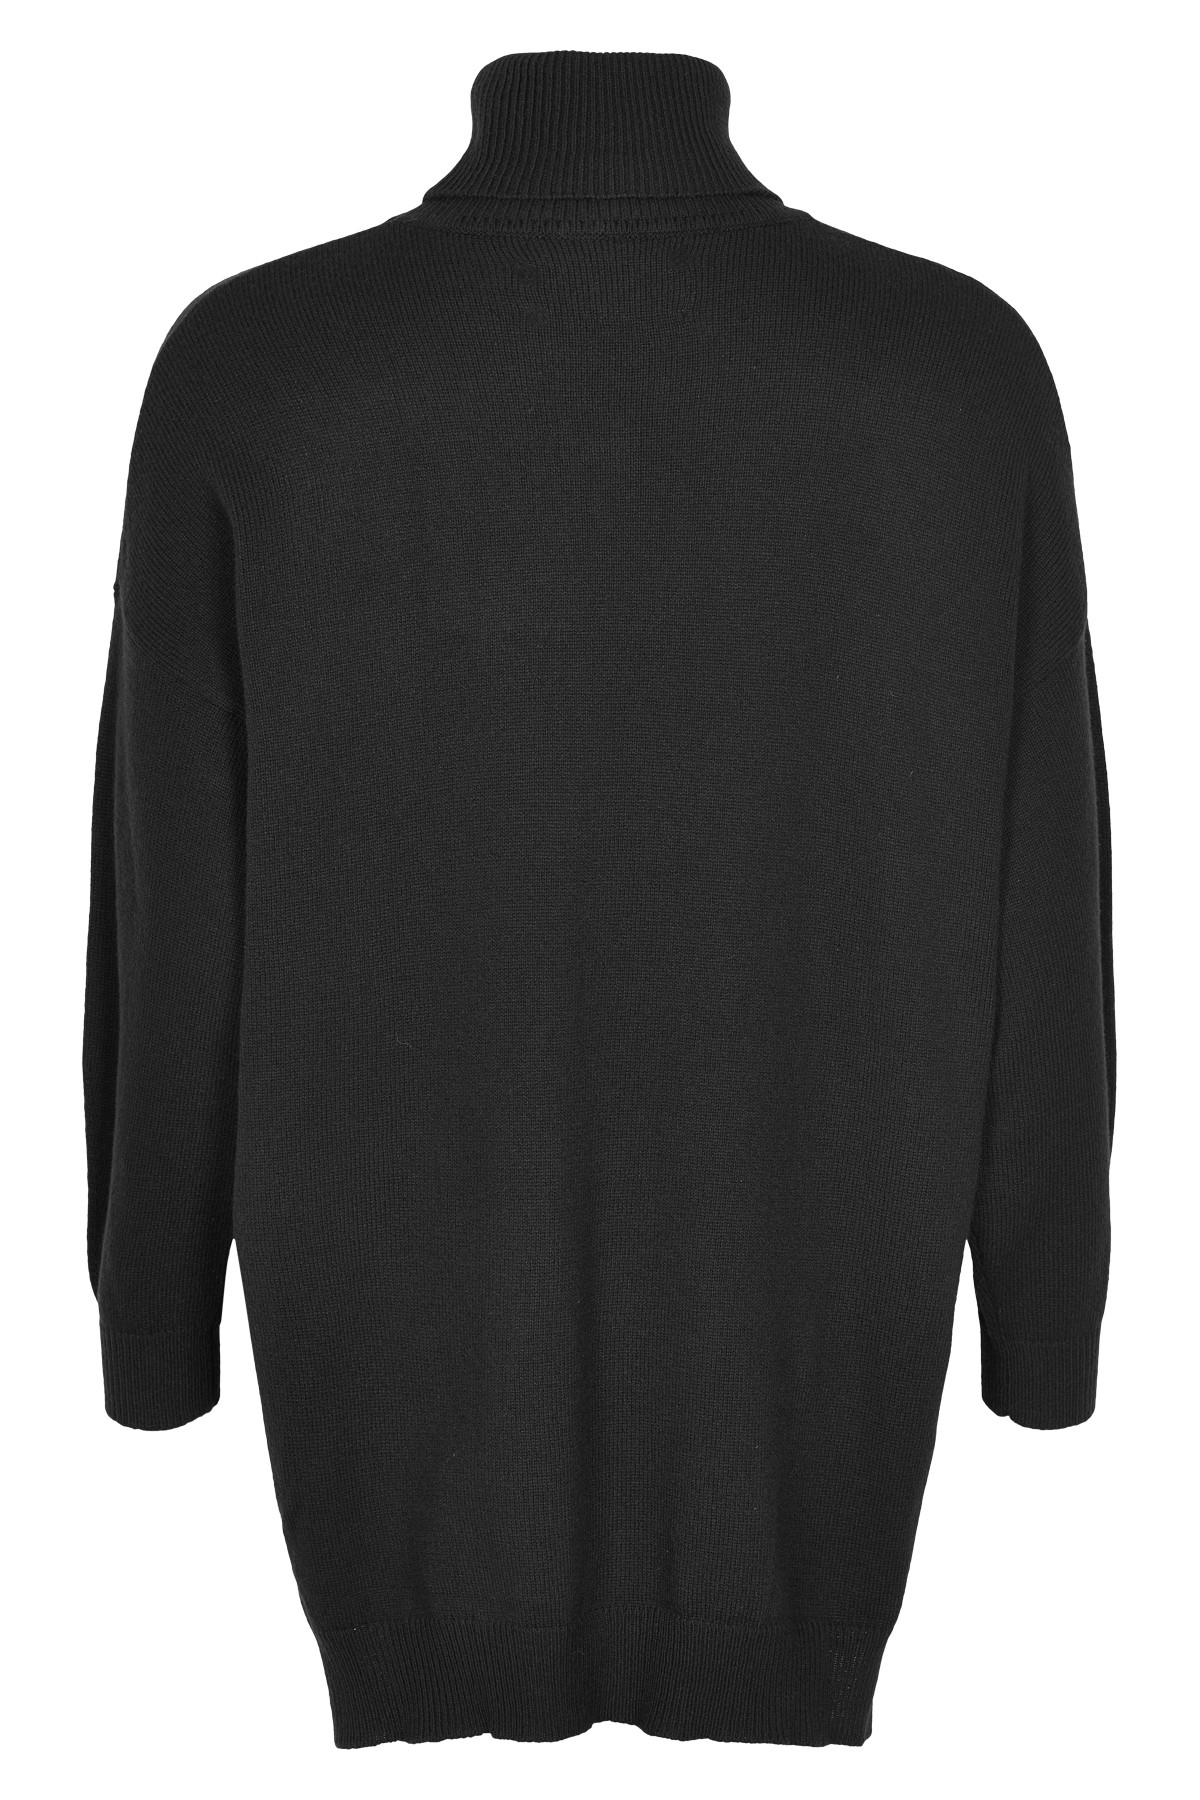 Image of   AND LESS ALLESHA PULLOVER 5519214 C (Caviar, S)